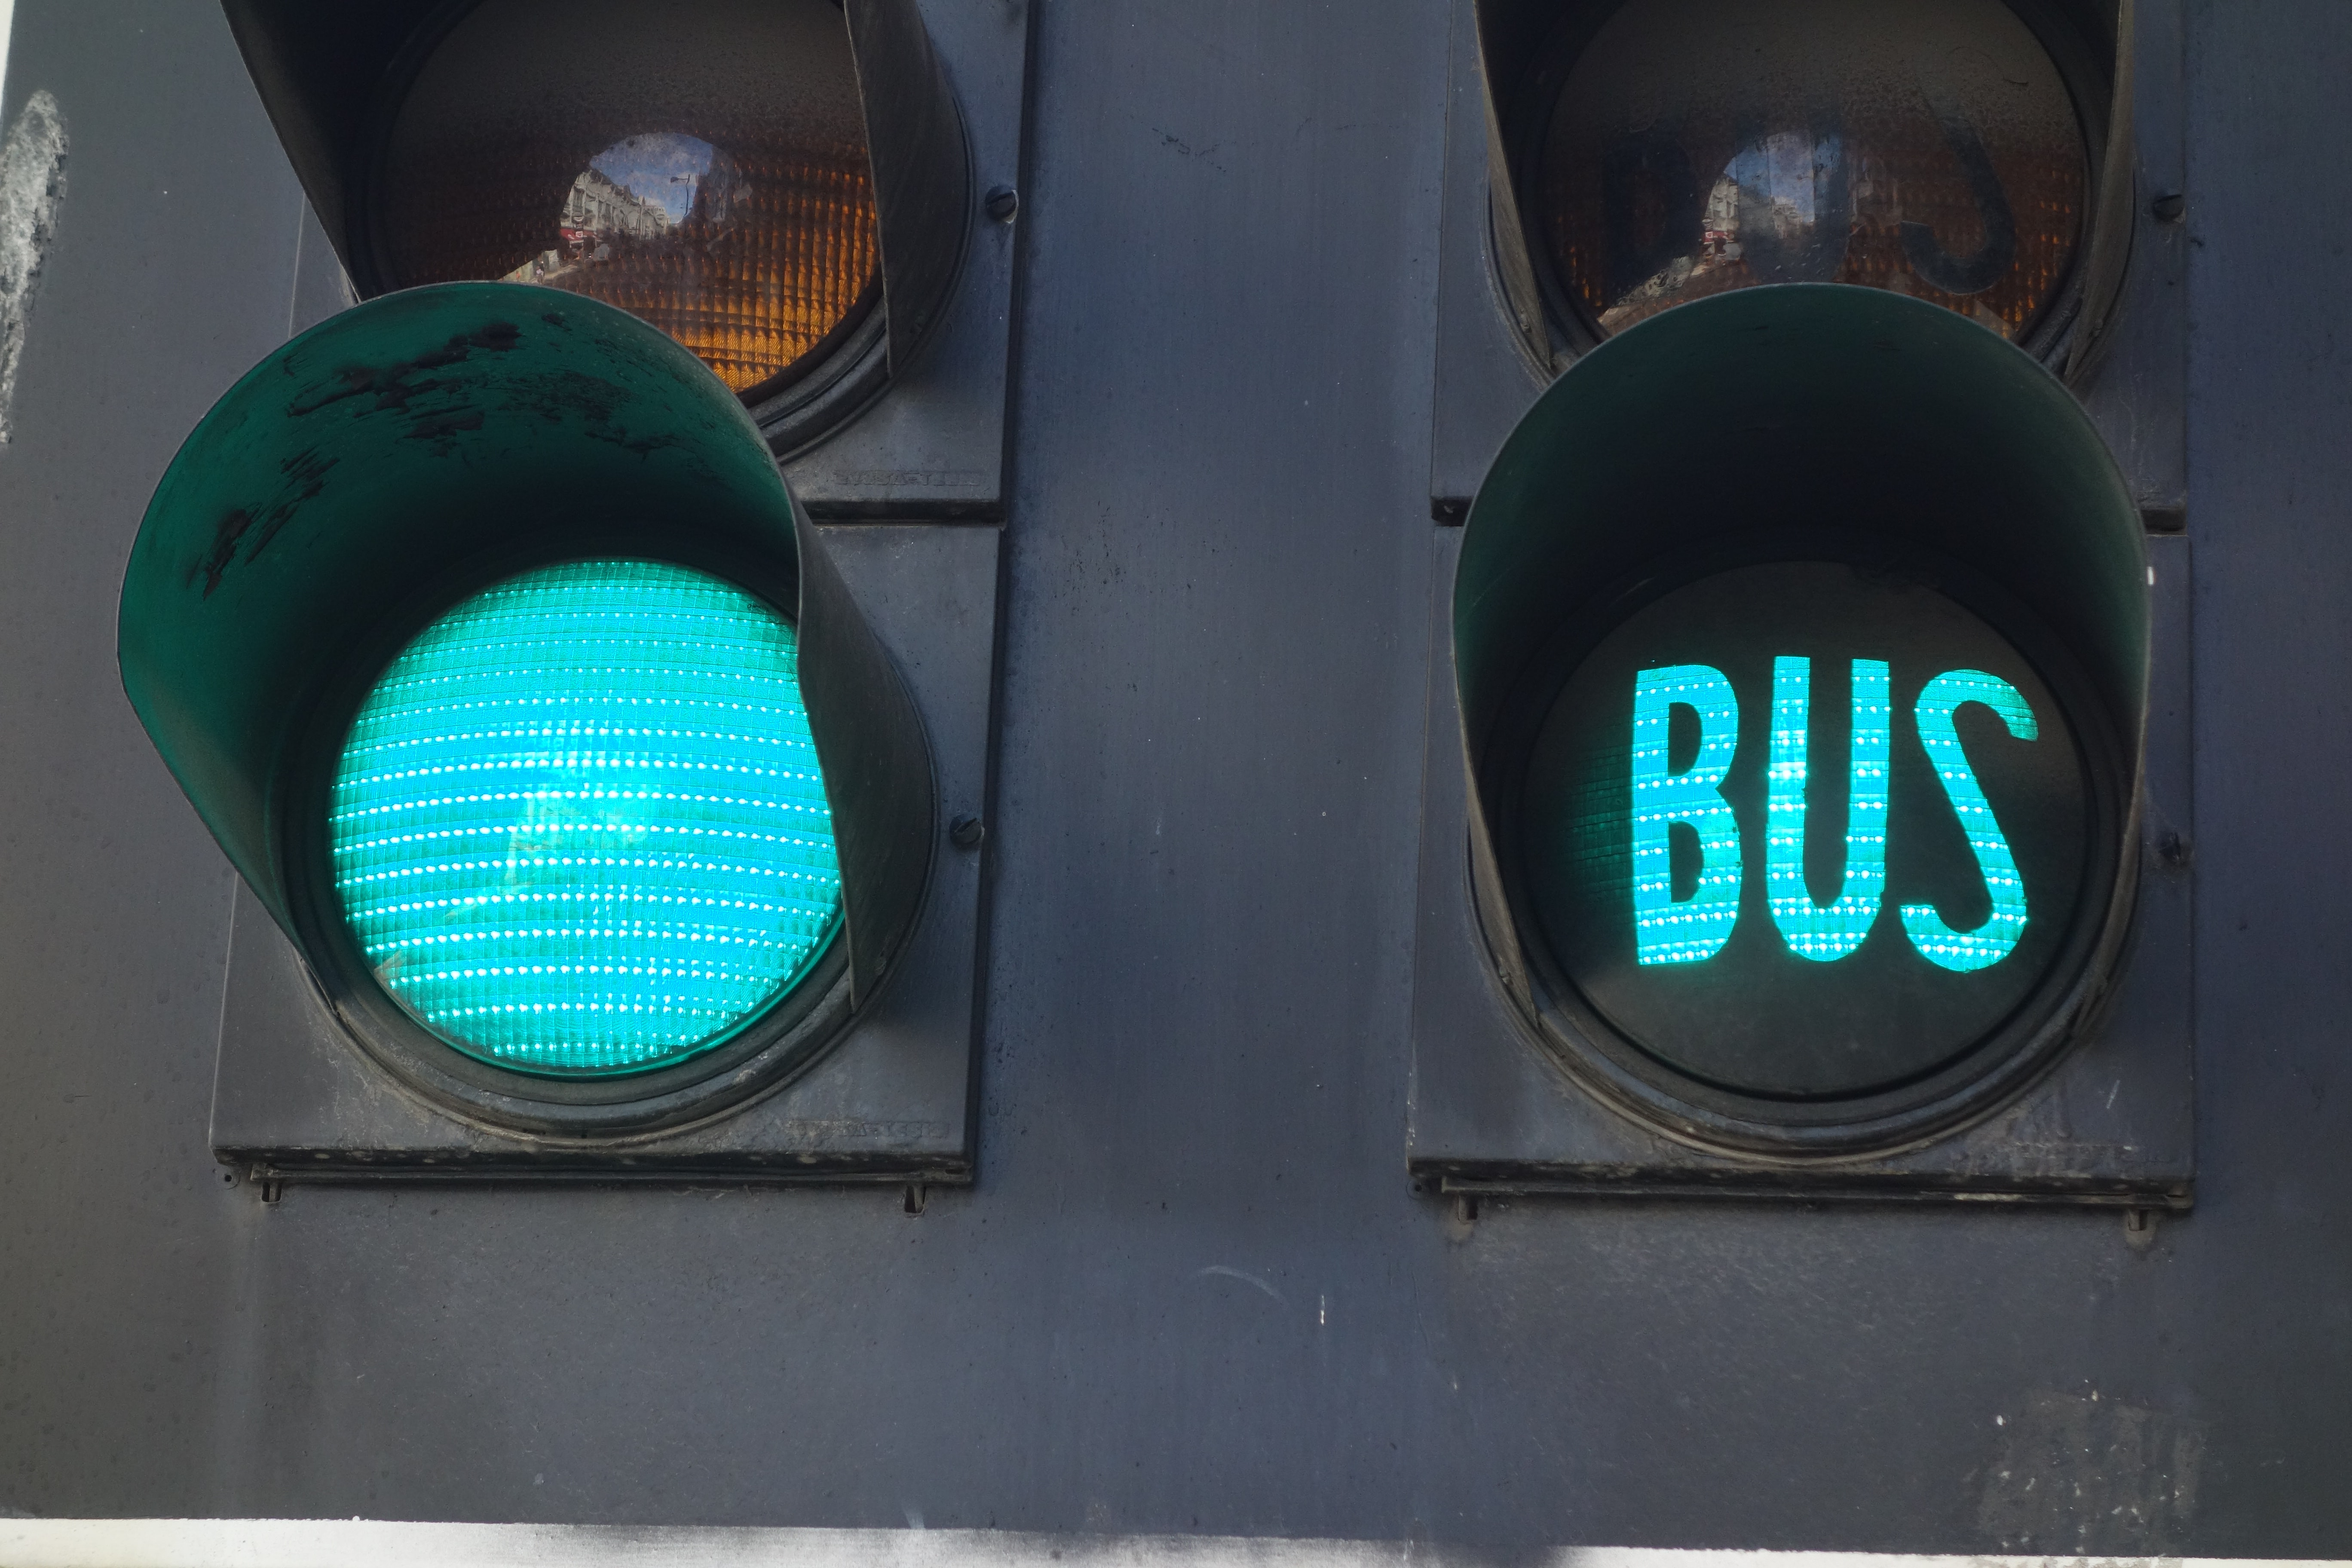 green light bus display